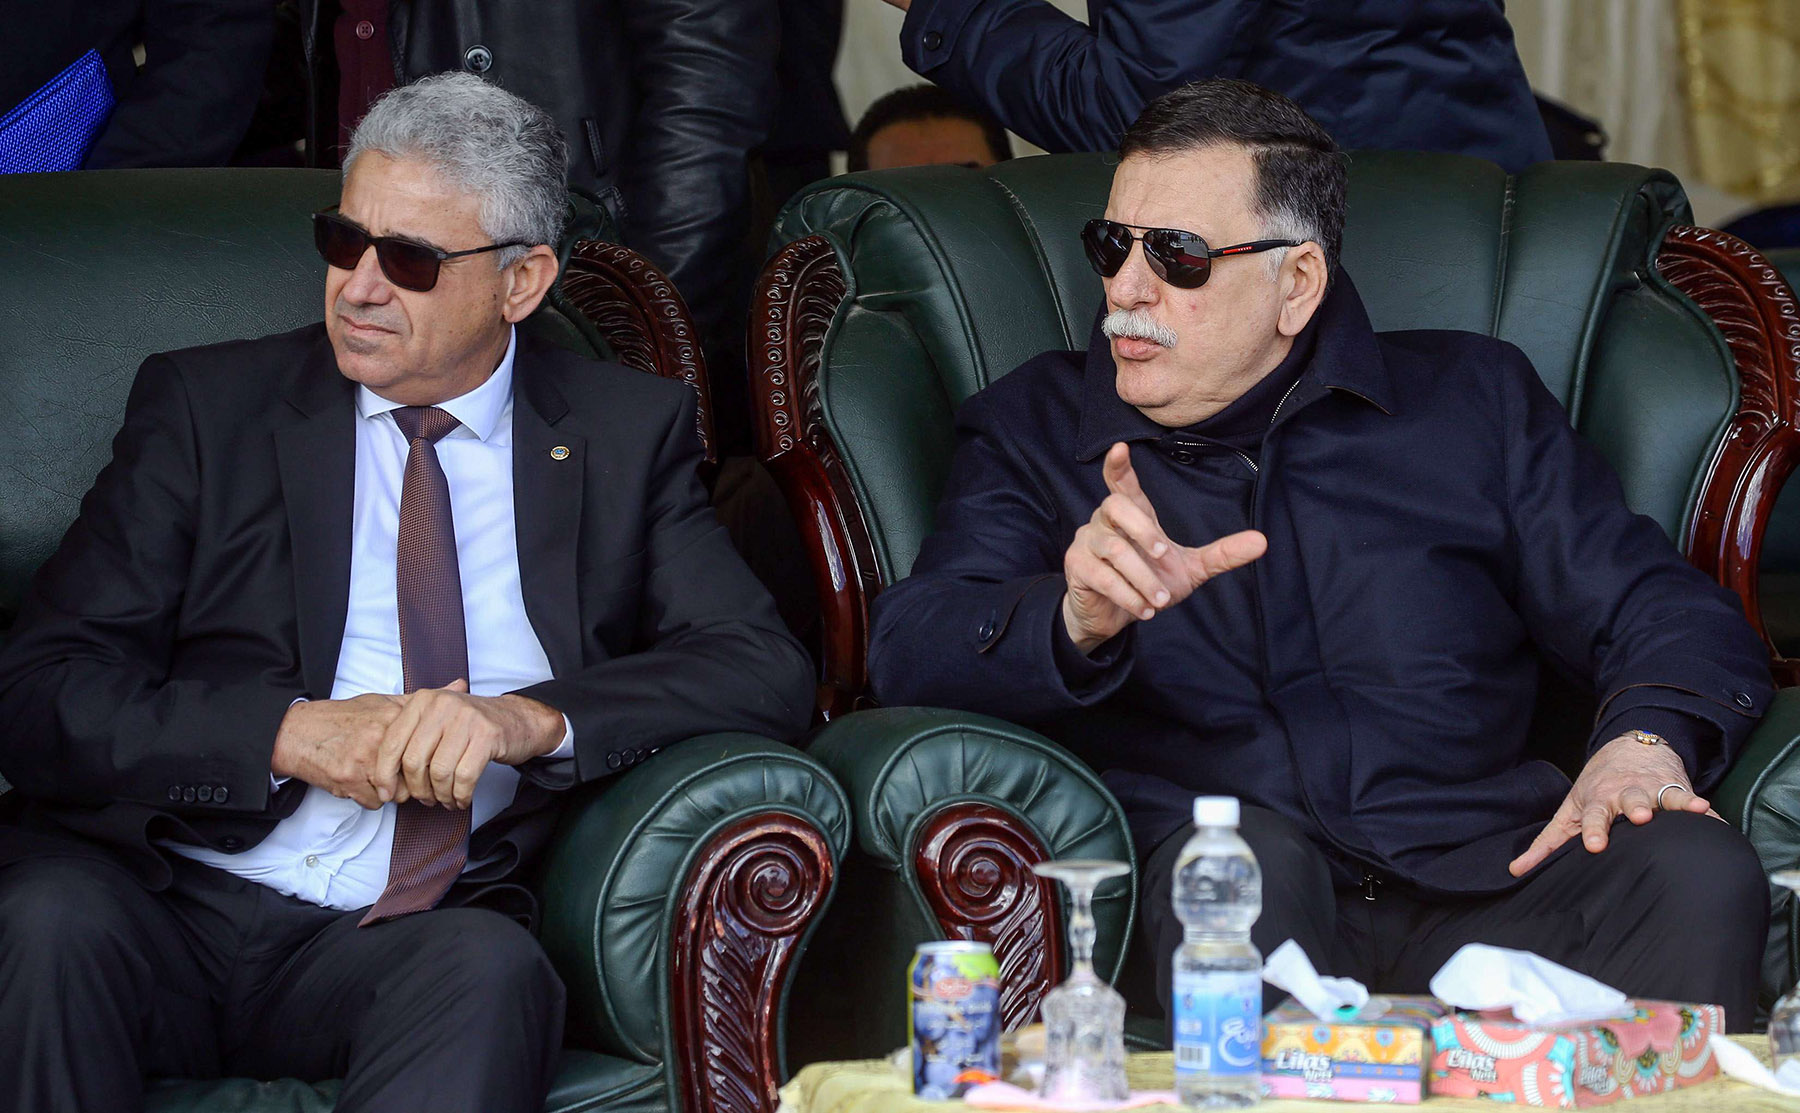 A 2019 file picture shows GNA's Prime Minister Fayez al-Sarraj (R) speaking with Interior Minister Fathi Bashagha (L) in Tripoli. (AFP)